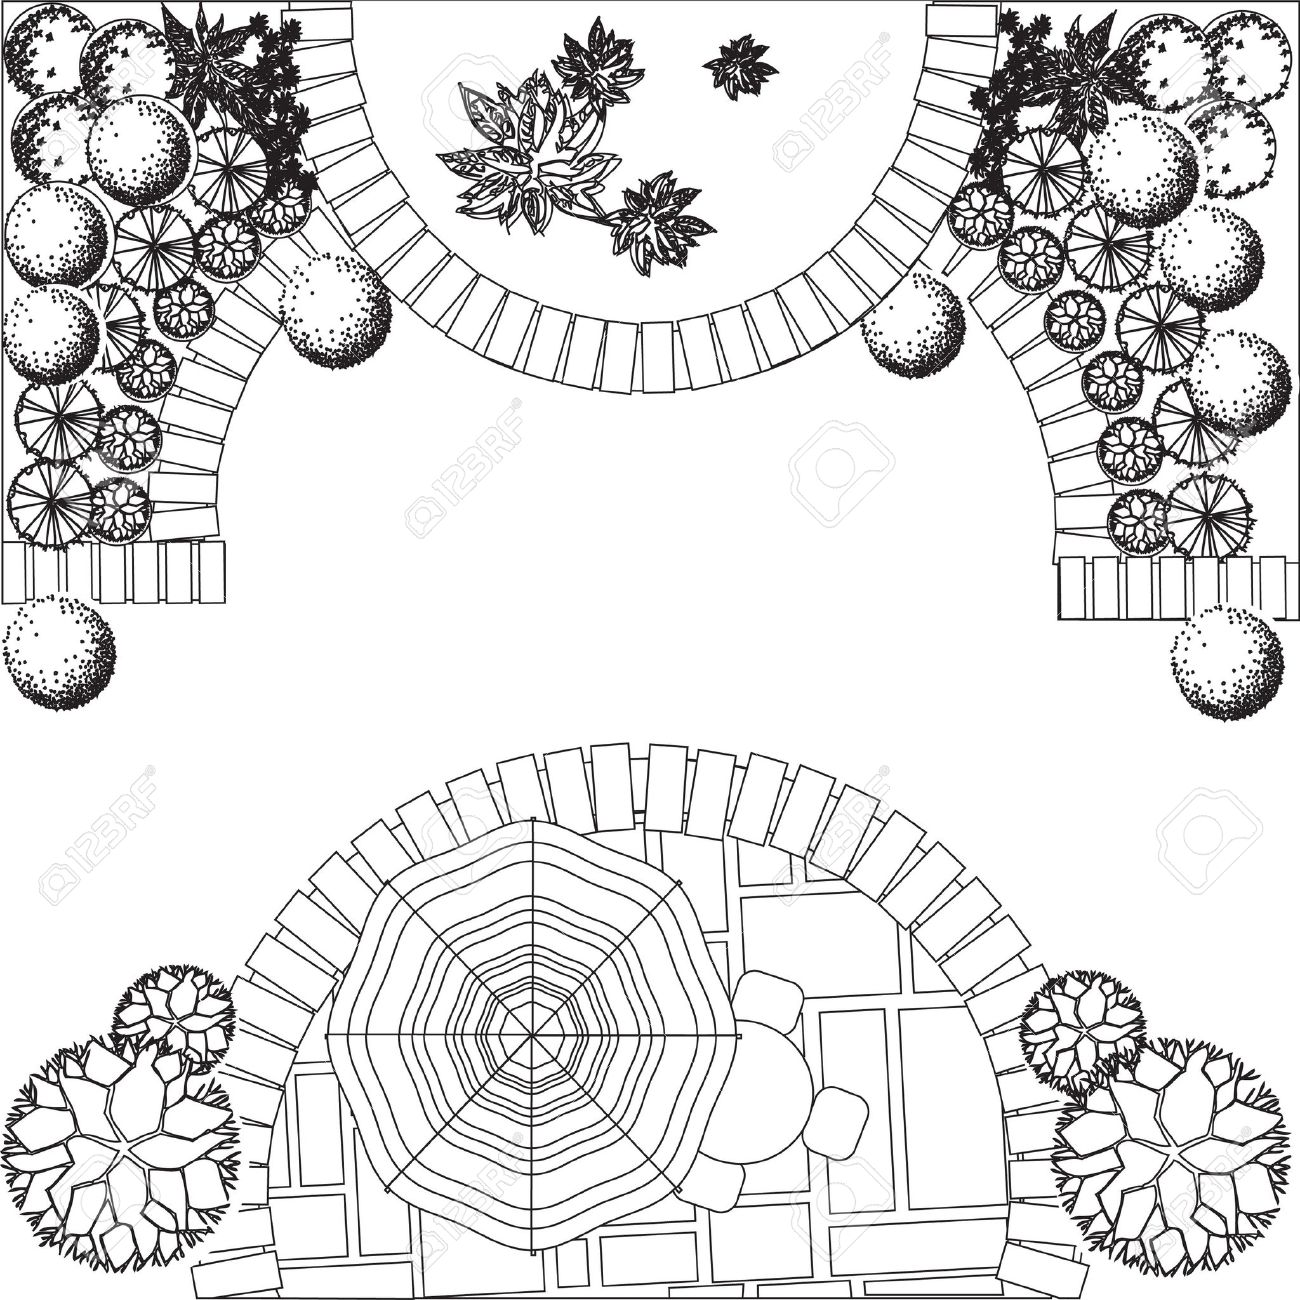 1300x1300 18966676 Plan Of Garden With Plant Symbols Stock. Draw The Final